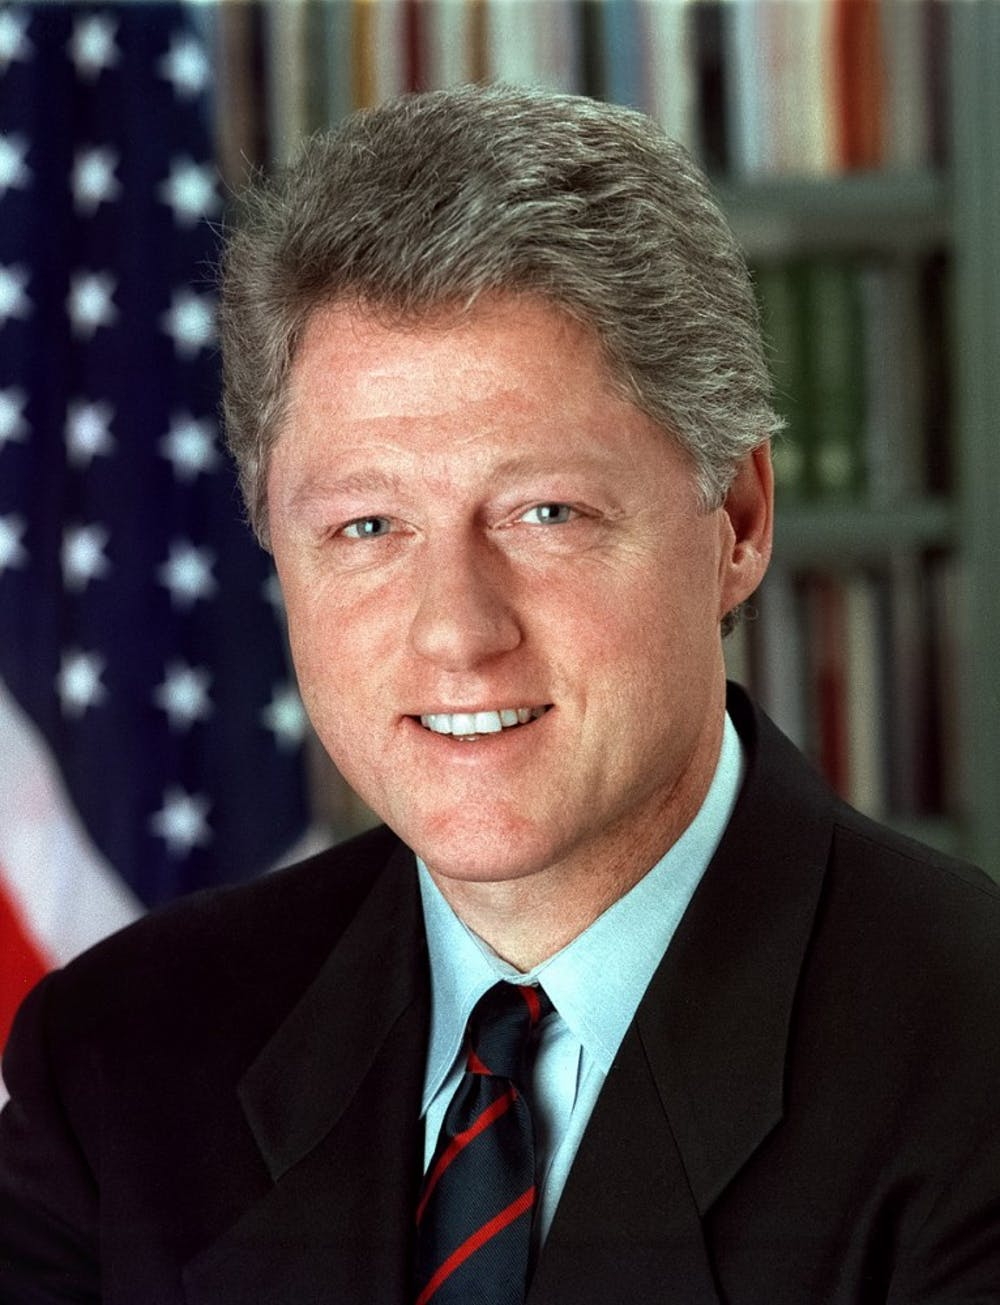 ns-billclinton-publicdomain